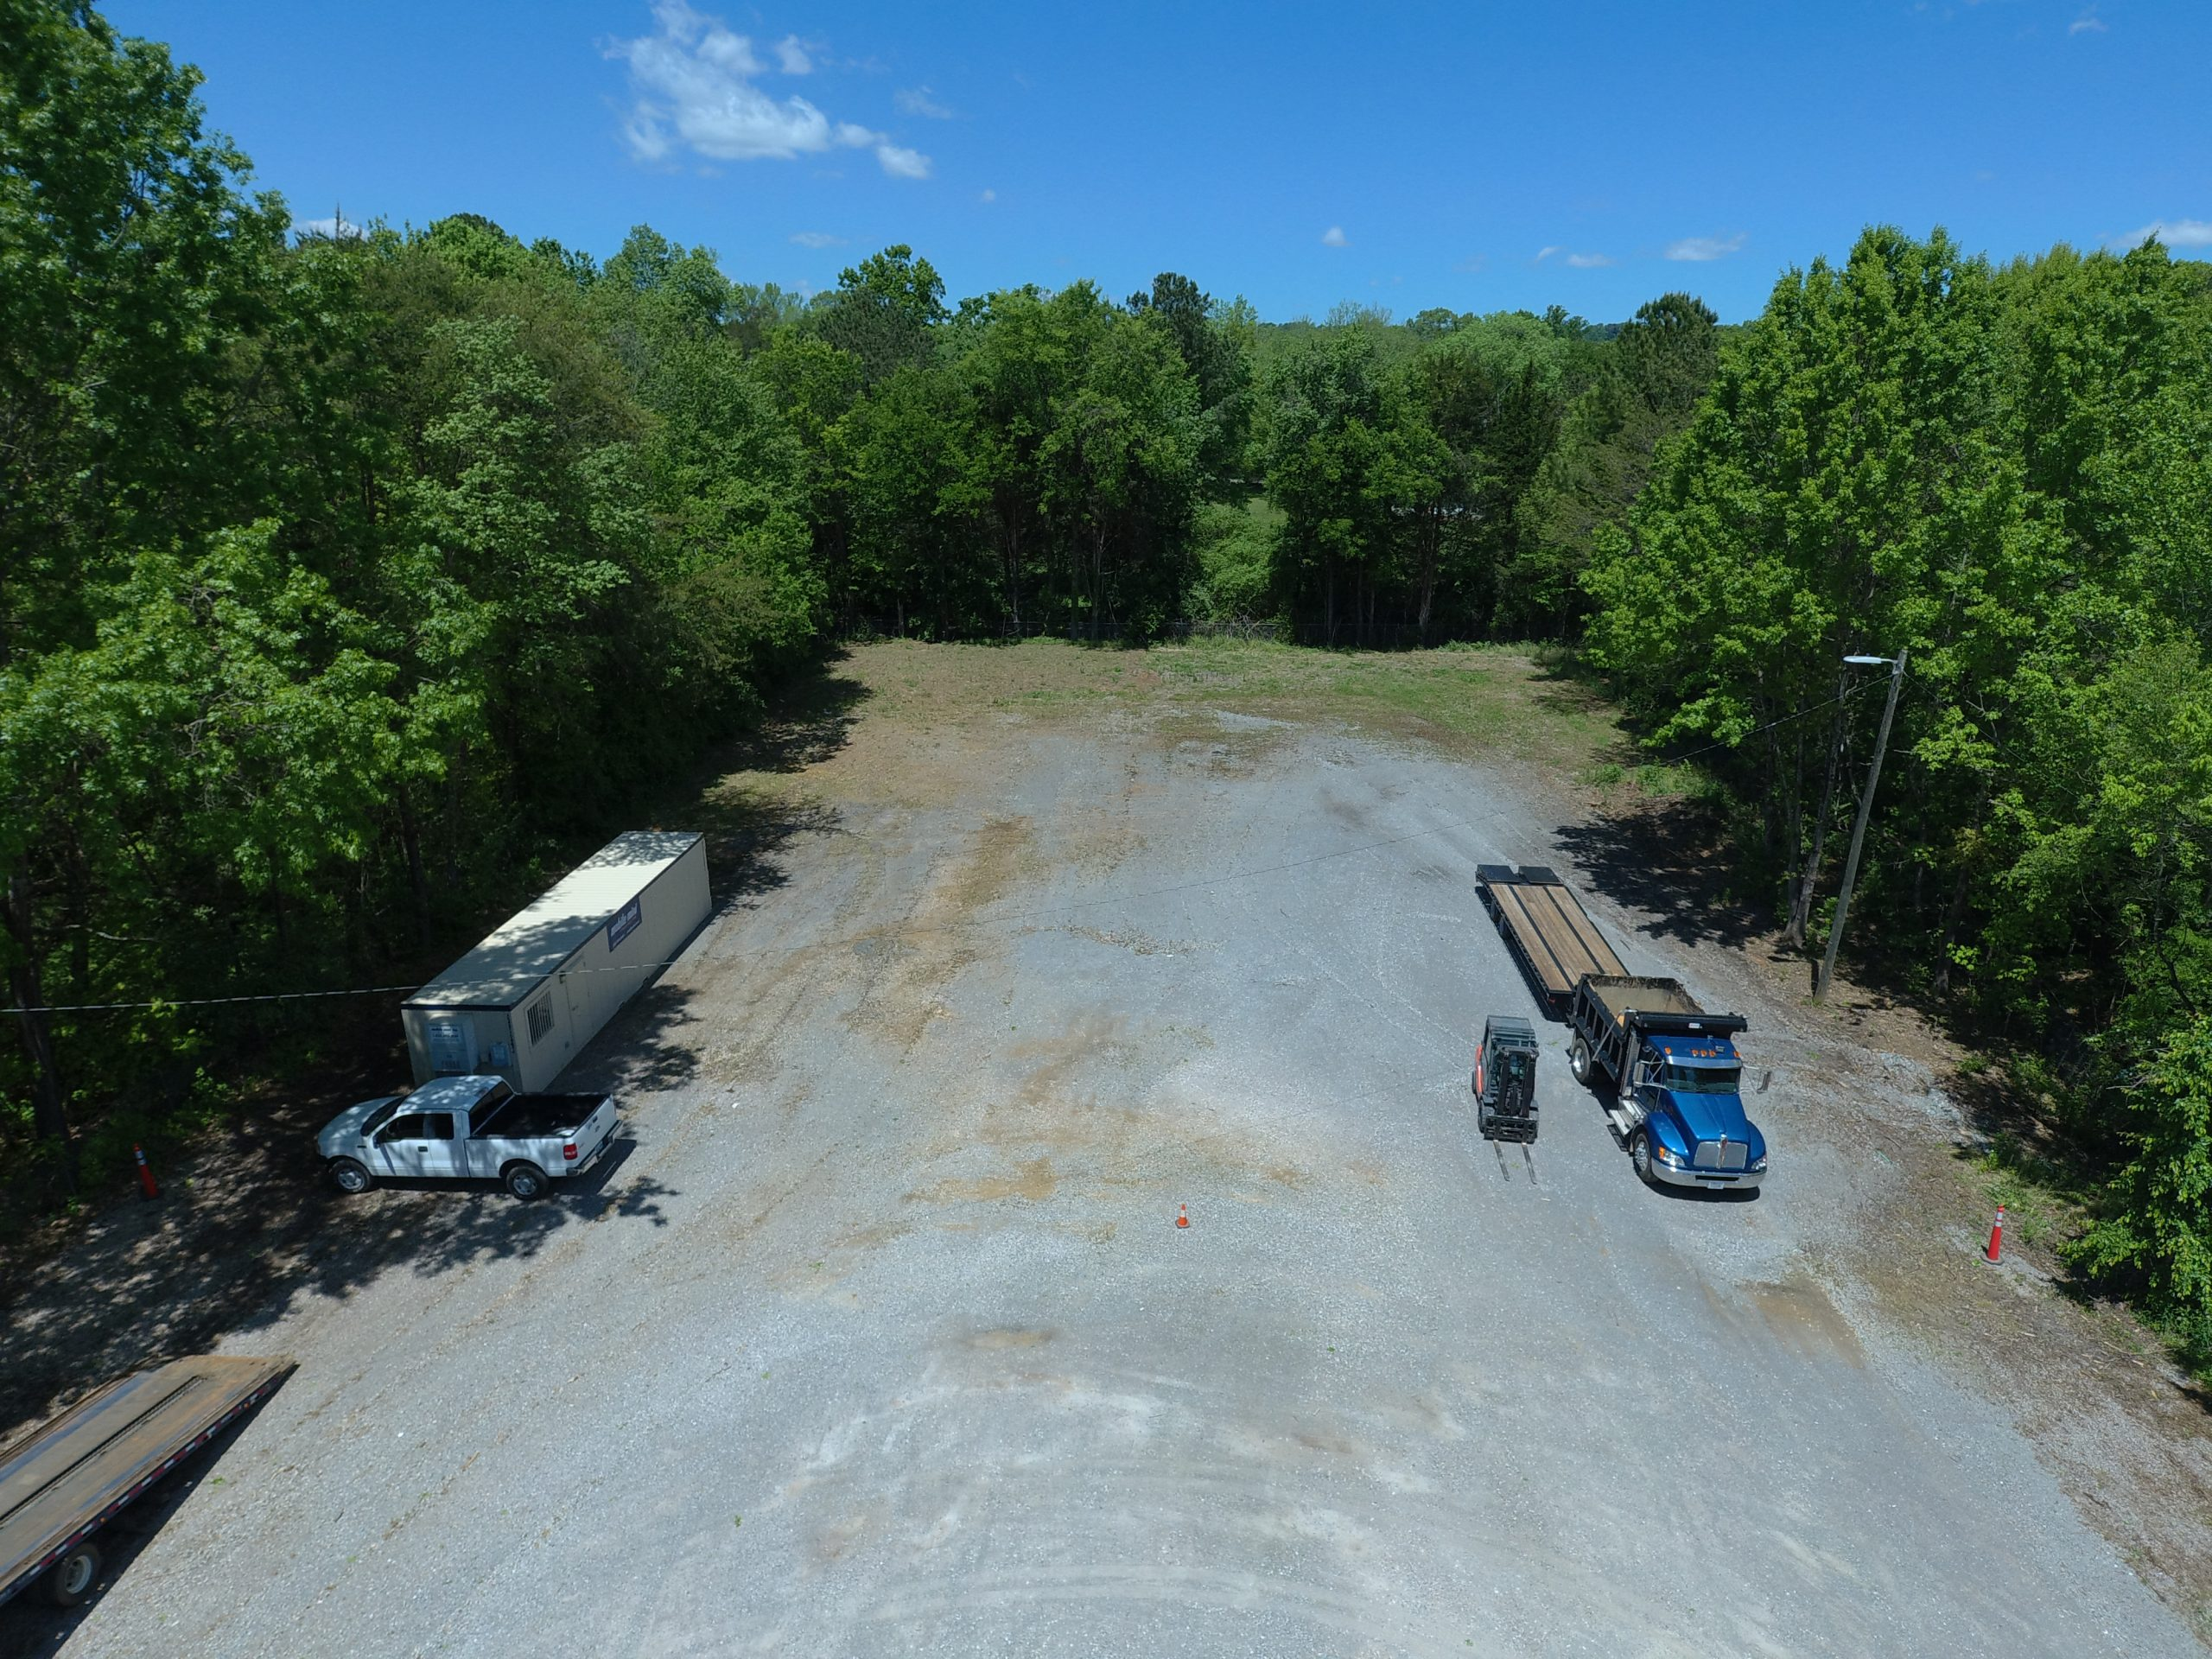 Commercial property for sale in Knoxville